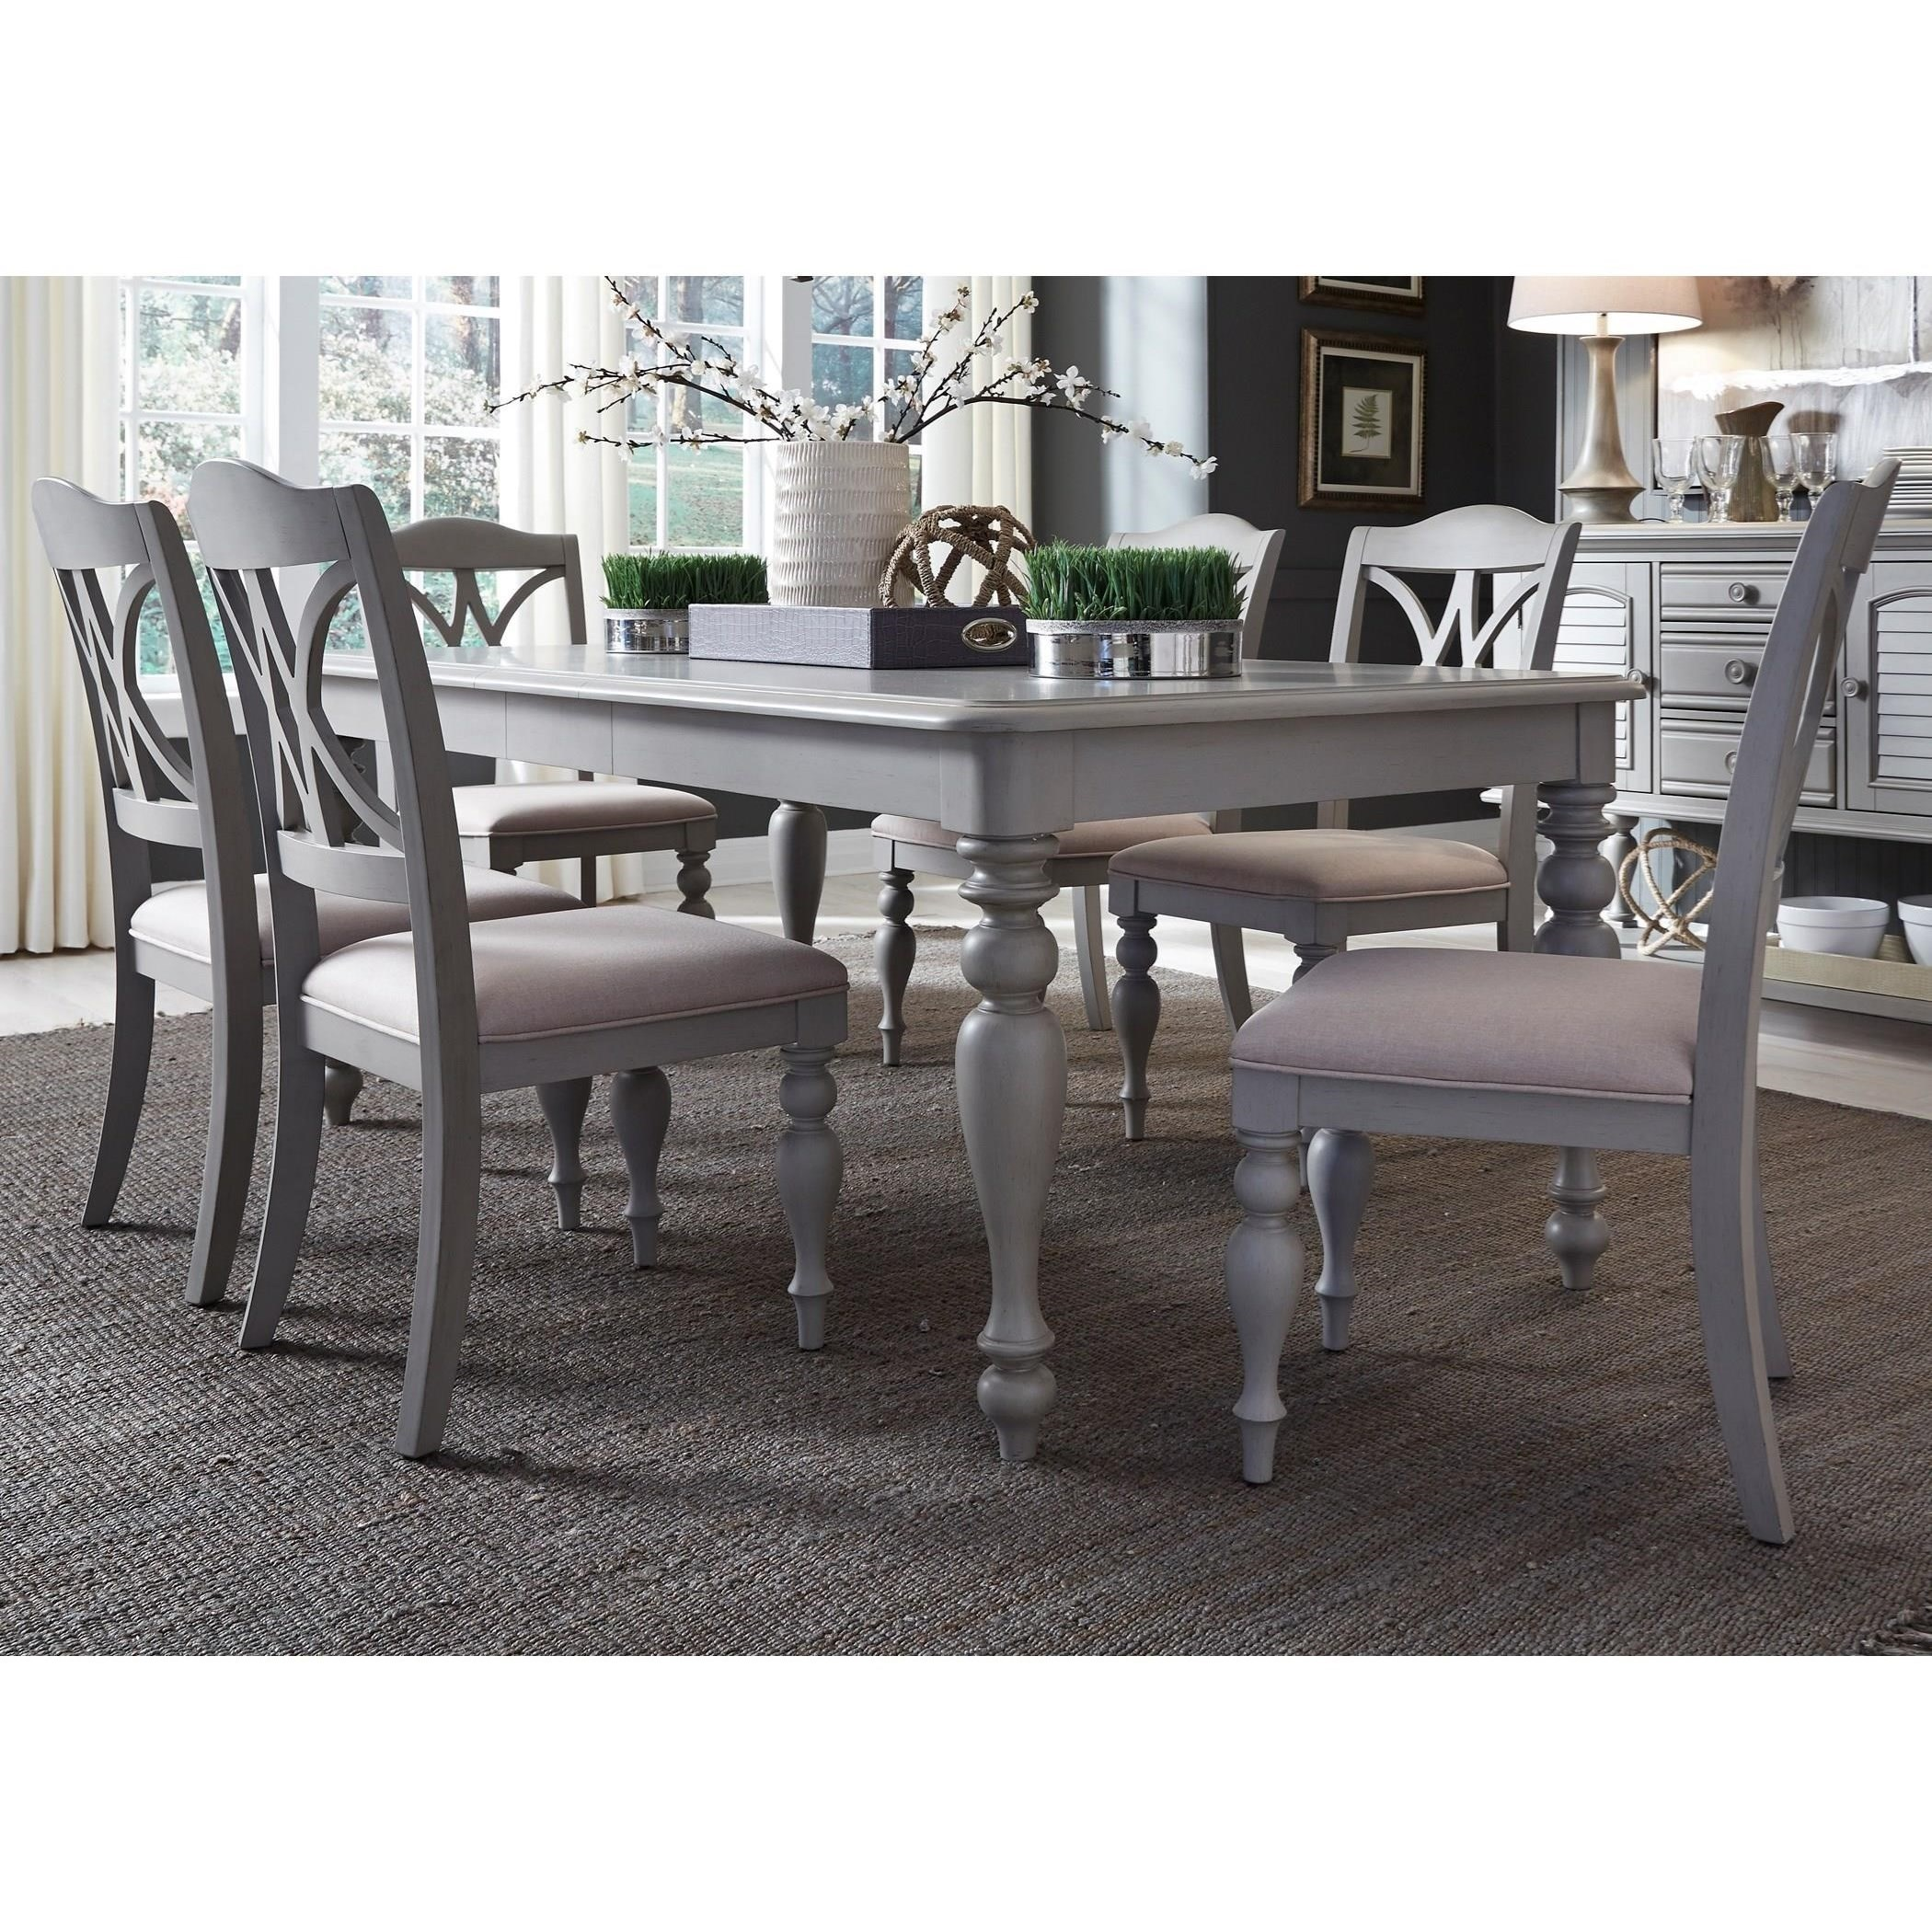 7 Piece Dining Table Set: Summer House Dining 7 Piece Rectangular Table Set